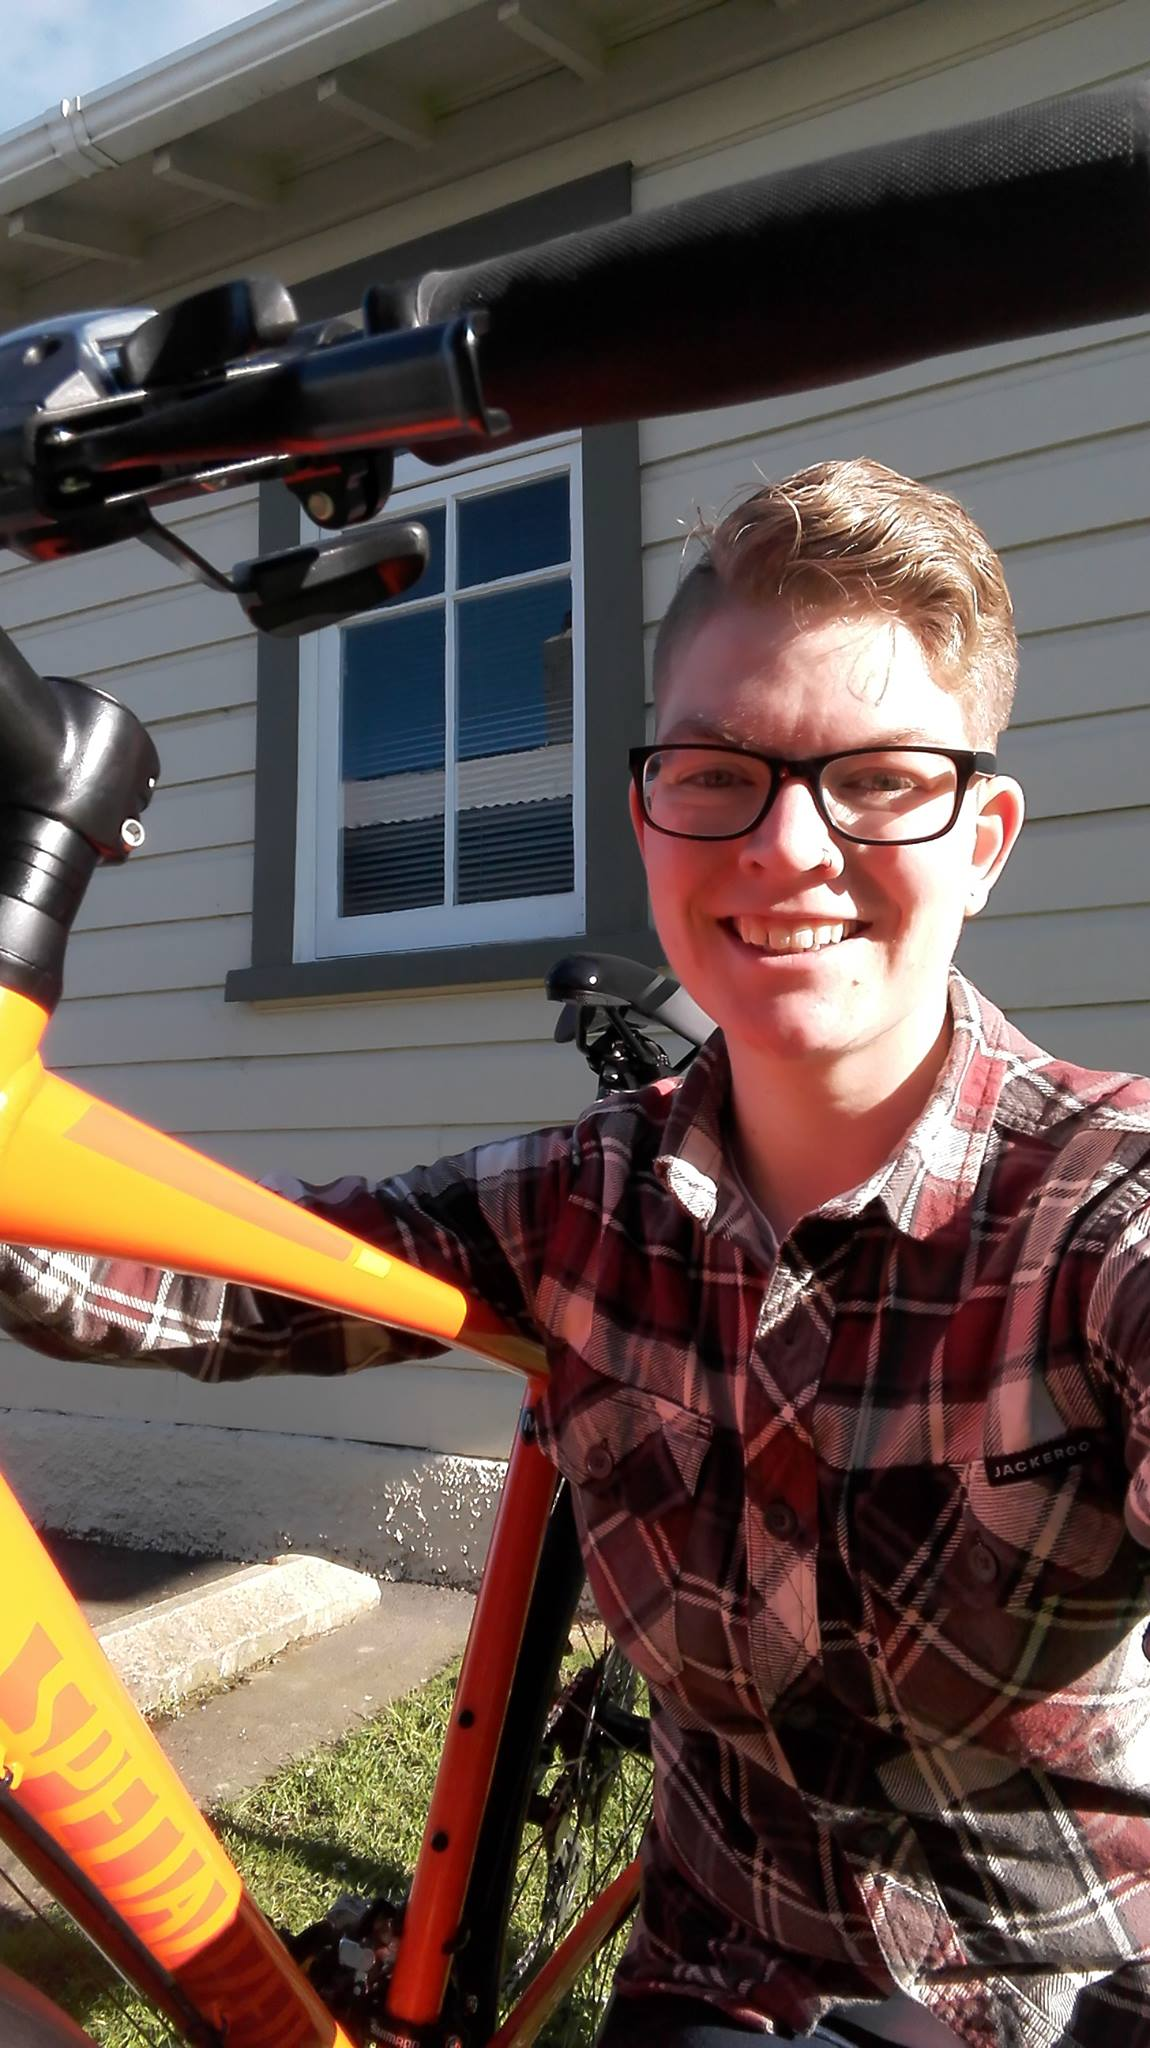 A 26-year old white woman with short blonde hair, wearing a red and grey plaid shirt and black glasses smiles while posing with her orange bicycle.